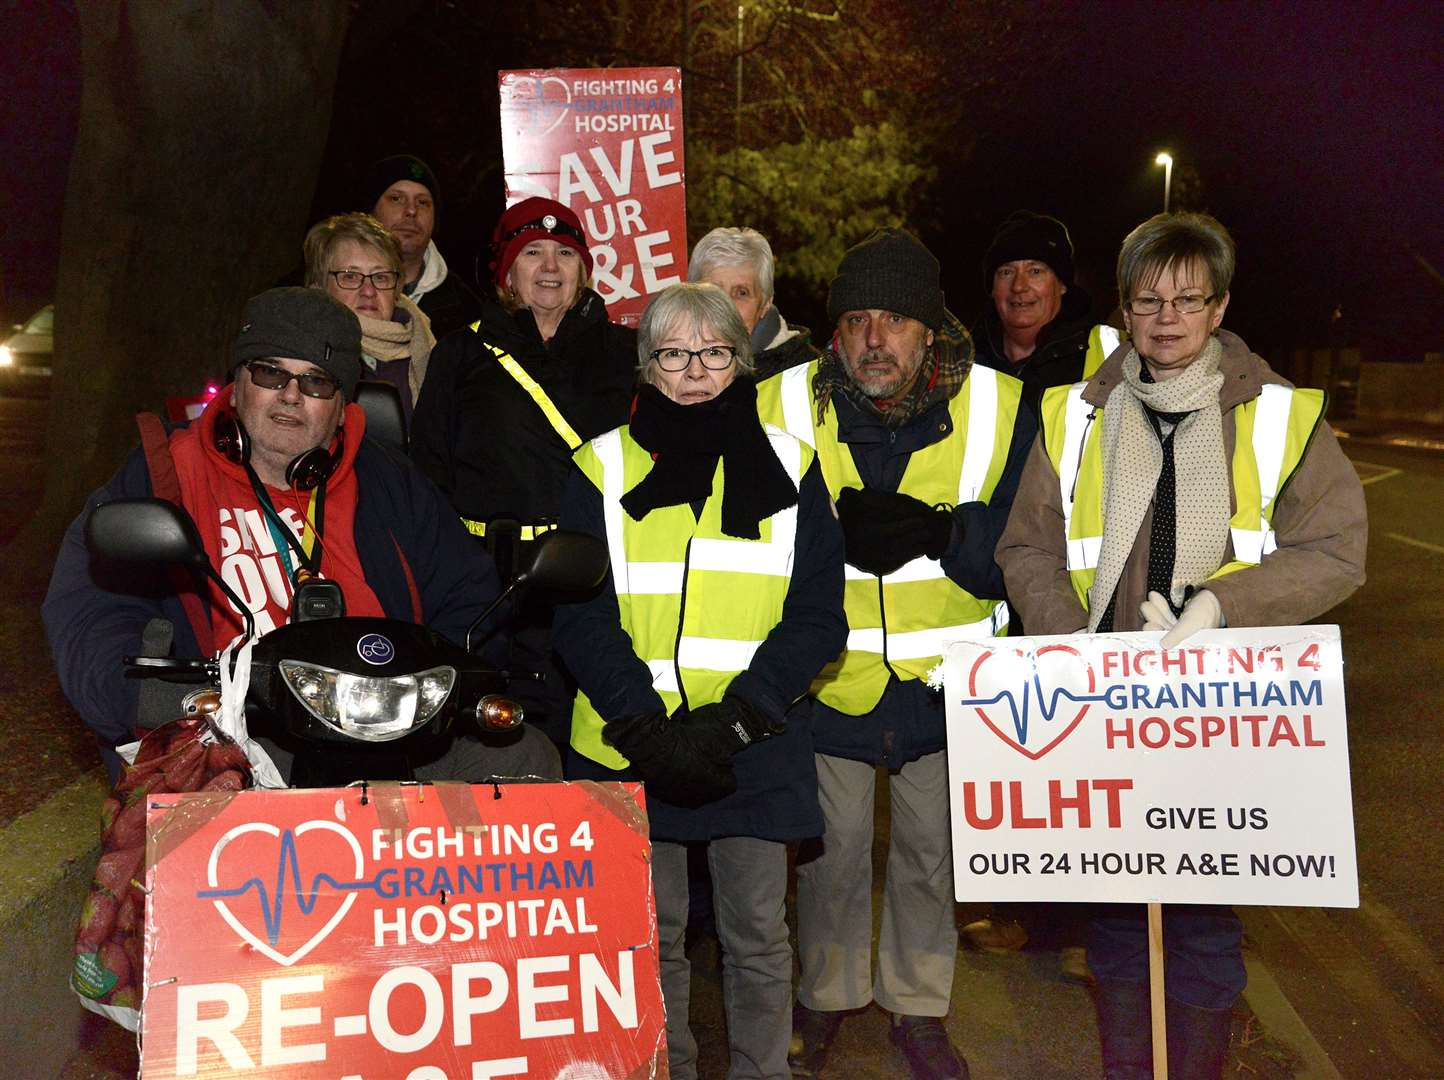 The vigil goes on at Grantham Hospital. (6753449)